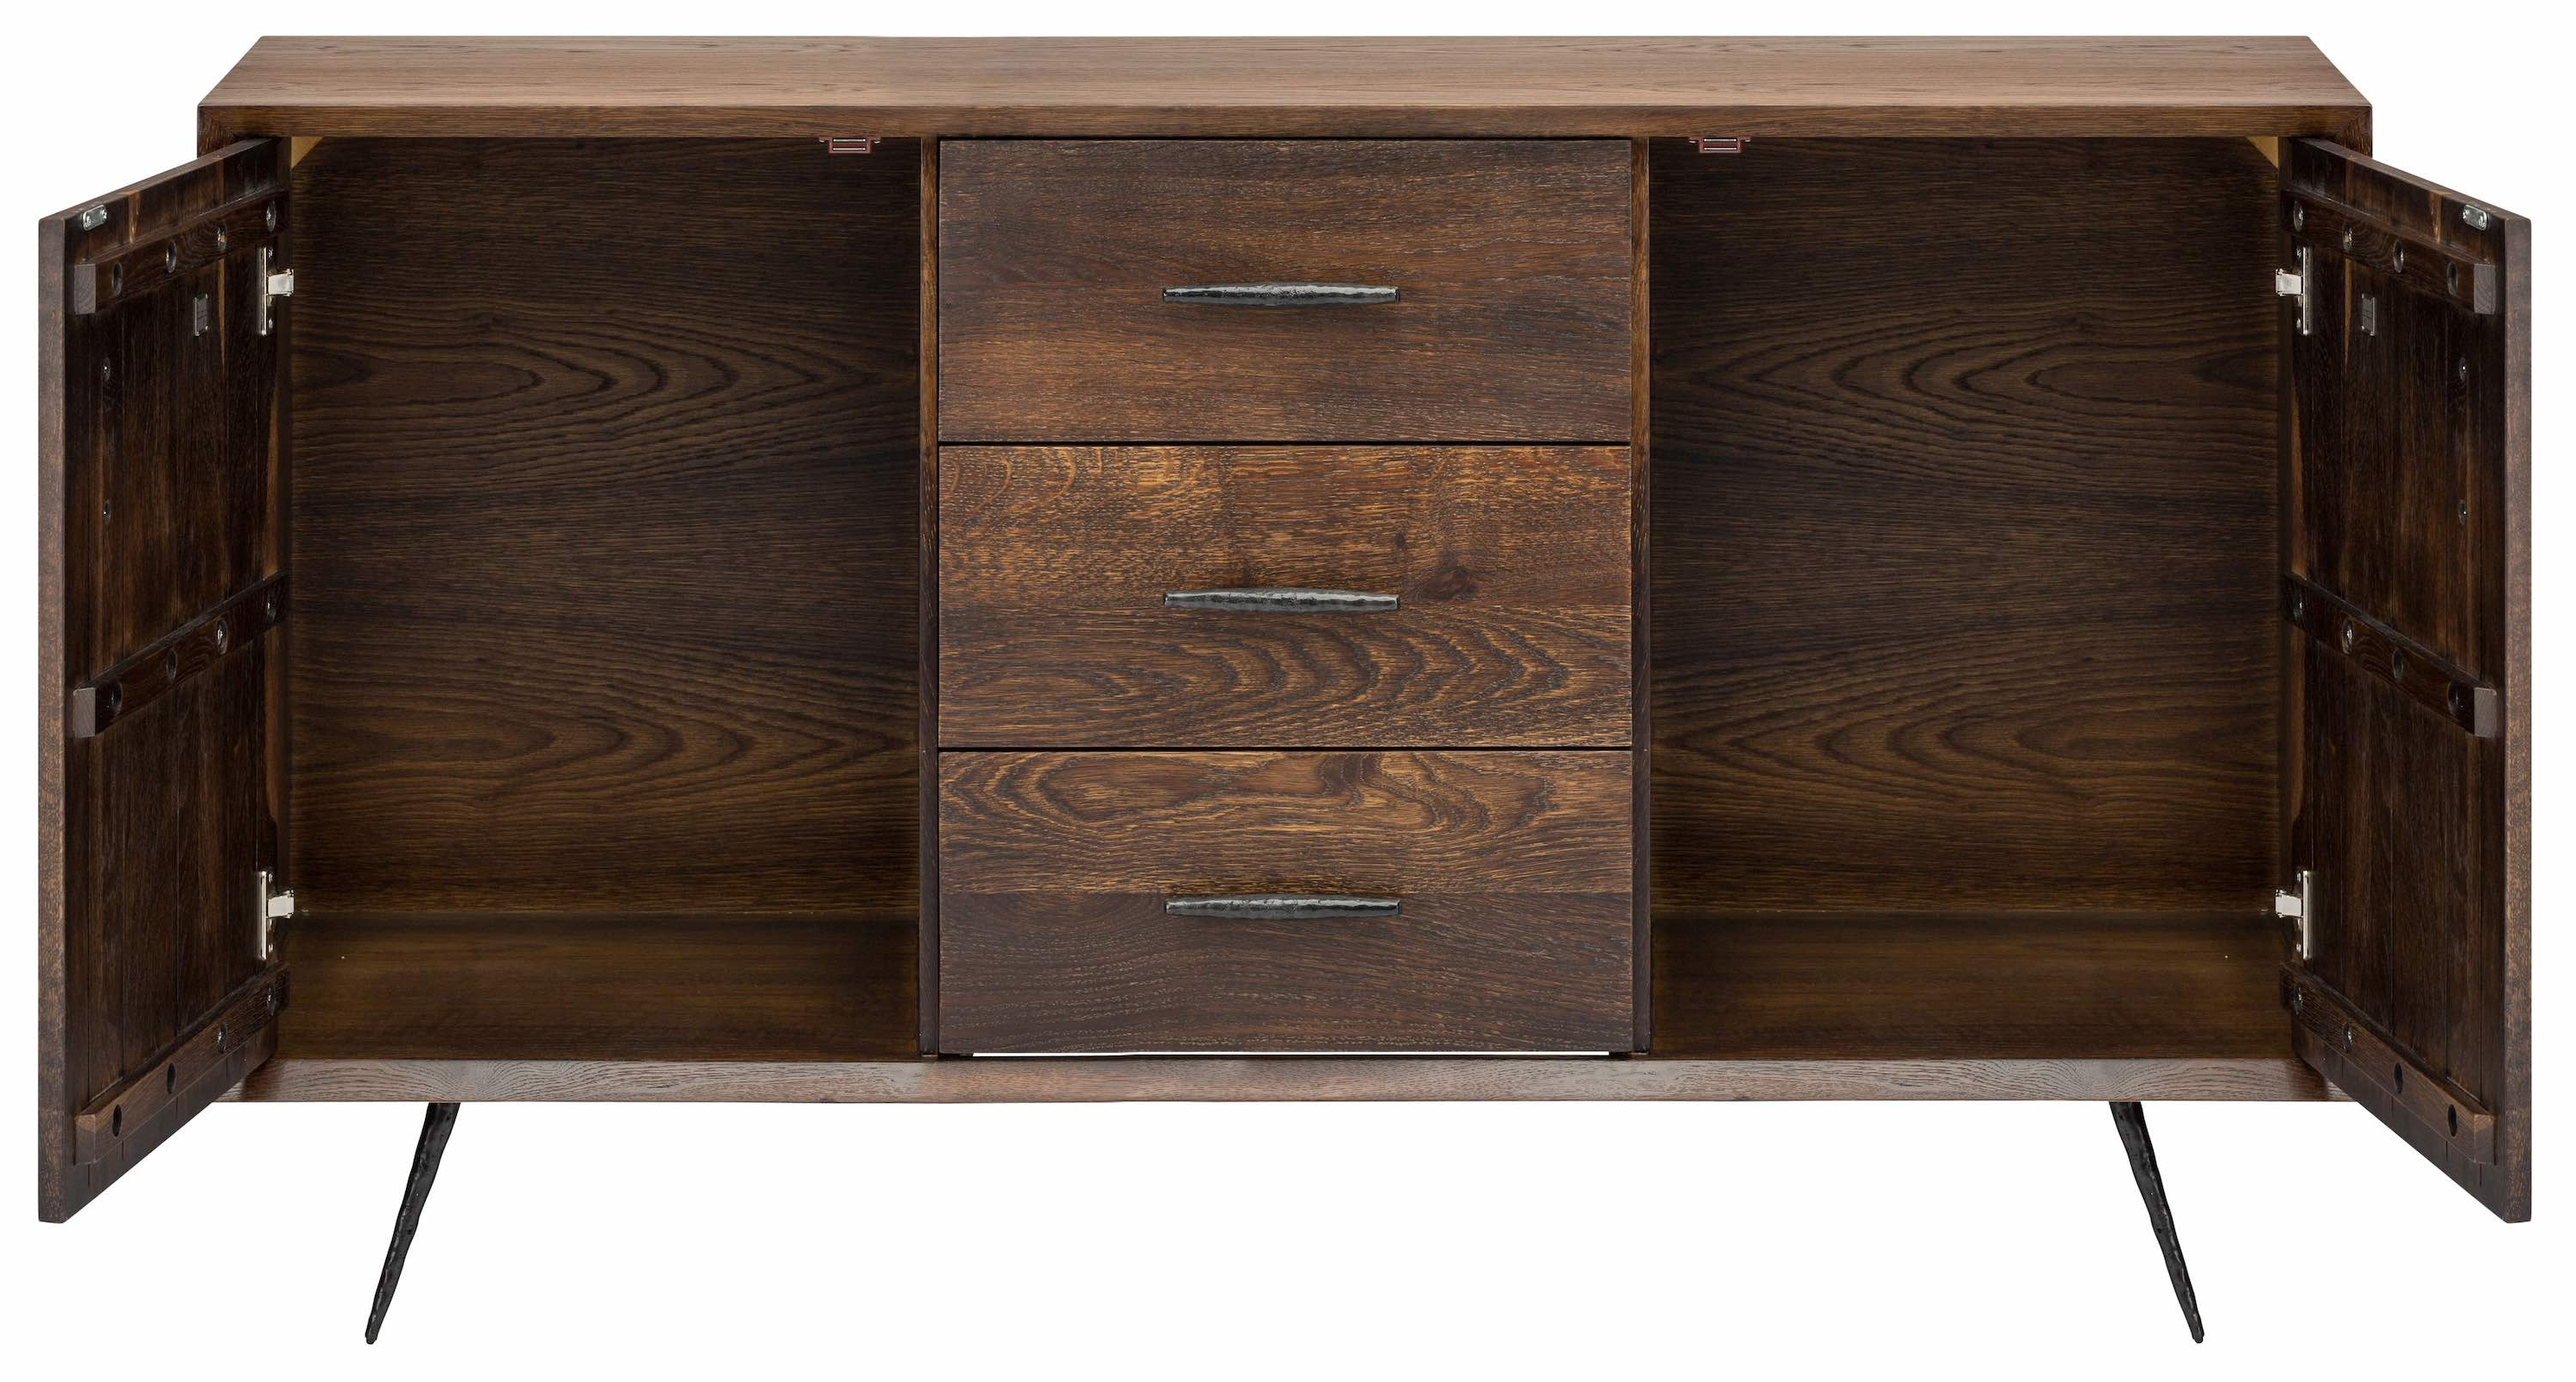 Trendy Nexa Sideboard Cabinet In Seared Oak And Black Cast Iron Legs With Regard To Black Oak Wood And Wrought Iron Sideboards (Gallery 4 of 20)